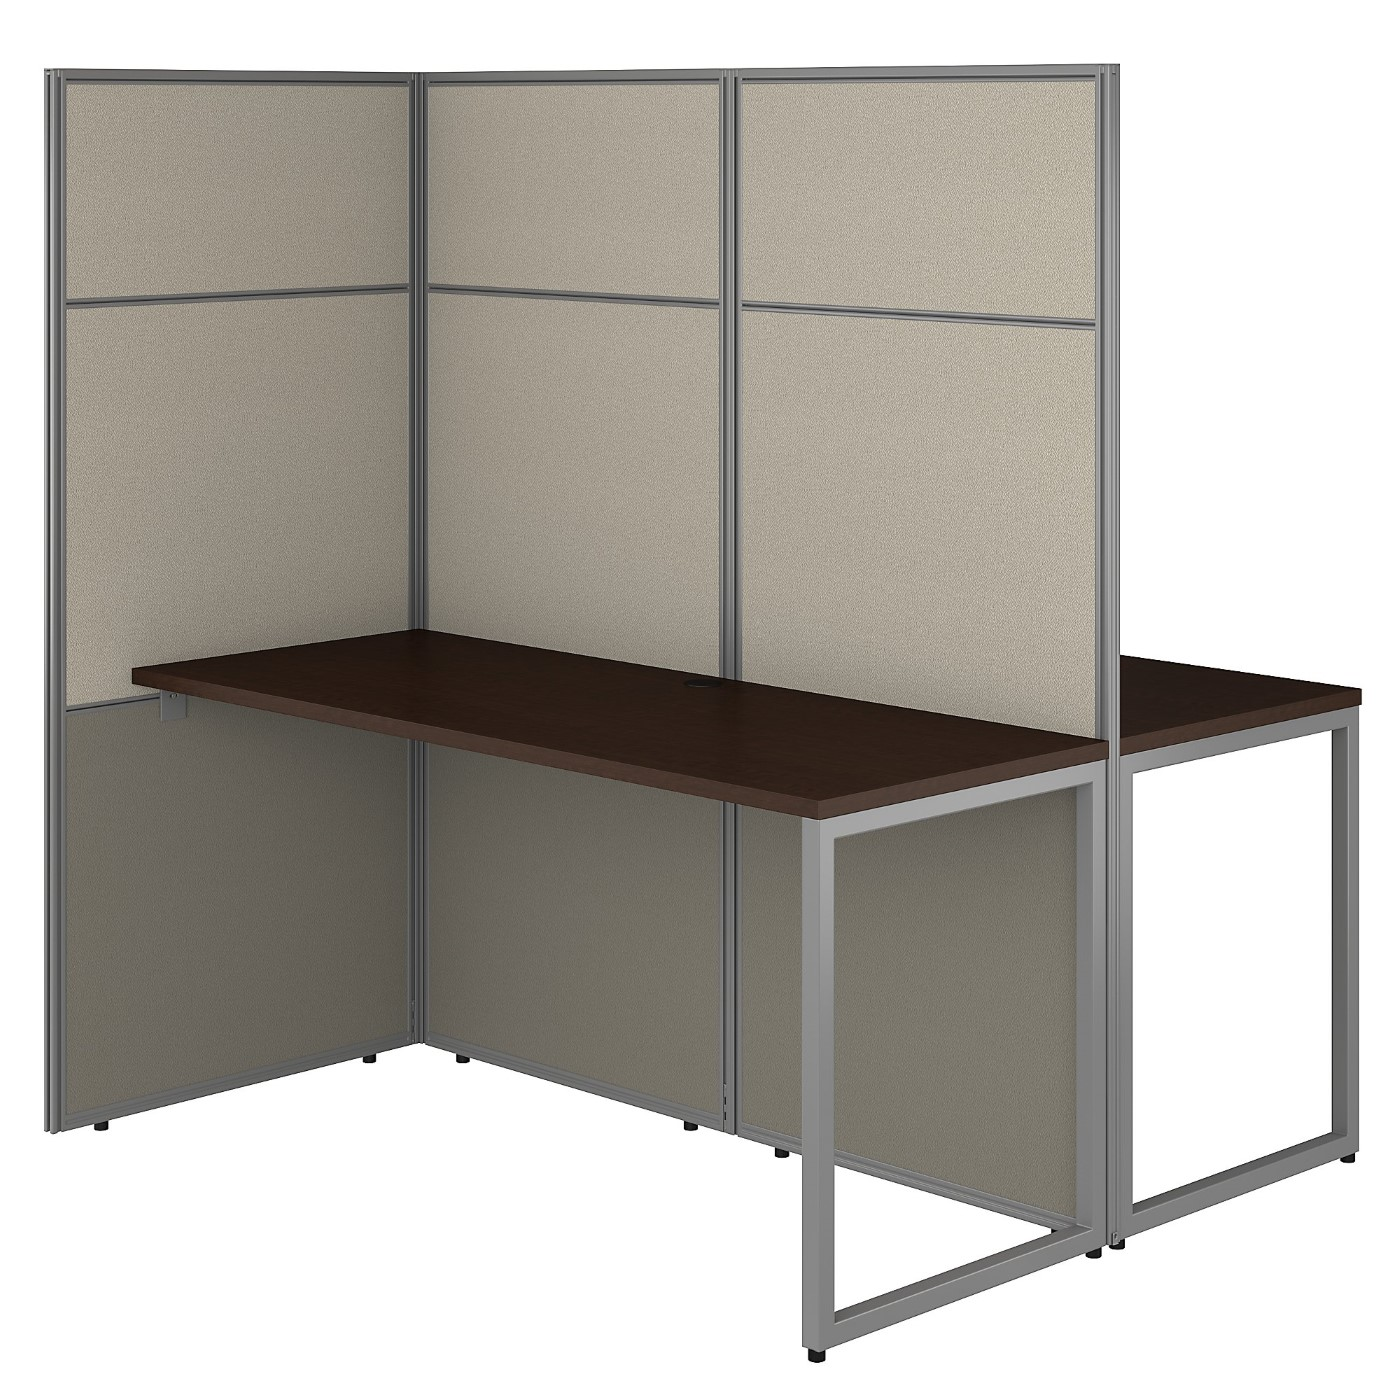 BUSH BUSINESS FURNITURE EASY OFFICE 60W 2 PERSON CUBICLE DESK WORKSTATION WITH 66H PANELS. FREE SHIPPING 30H x 72L x 72W.  SALE DEDUCT 10% MORE ENTER '10percent' IN COUPON CODE BOX WHILE CHECKING OUT. ENDS 5-31-20.